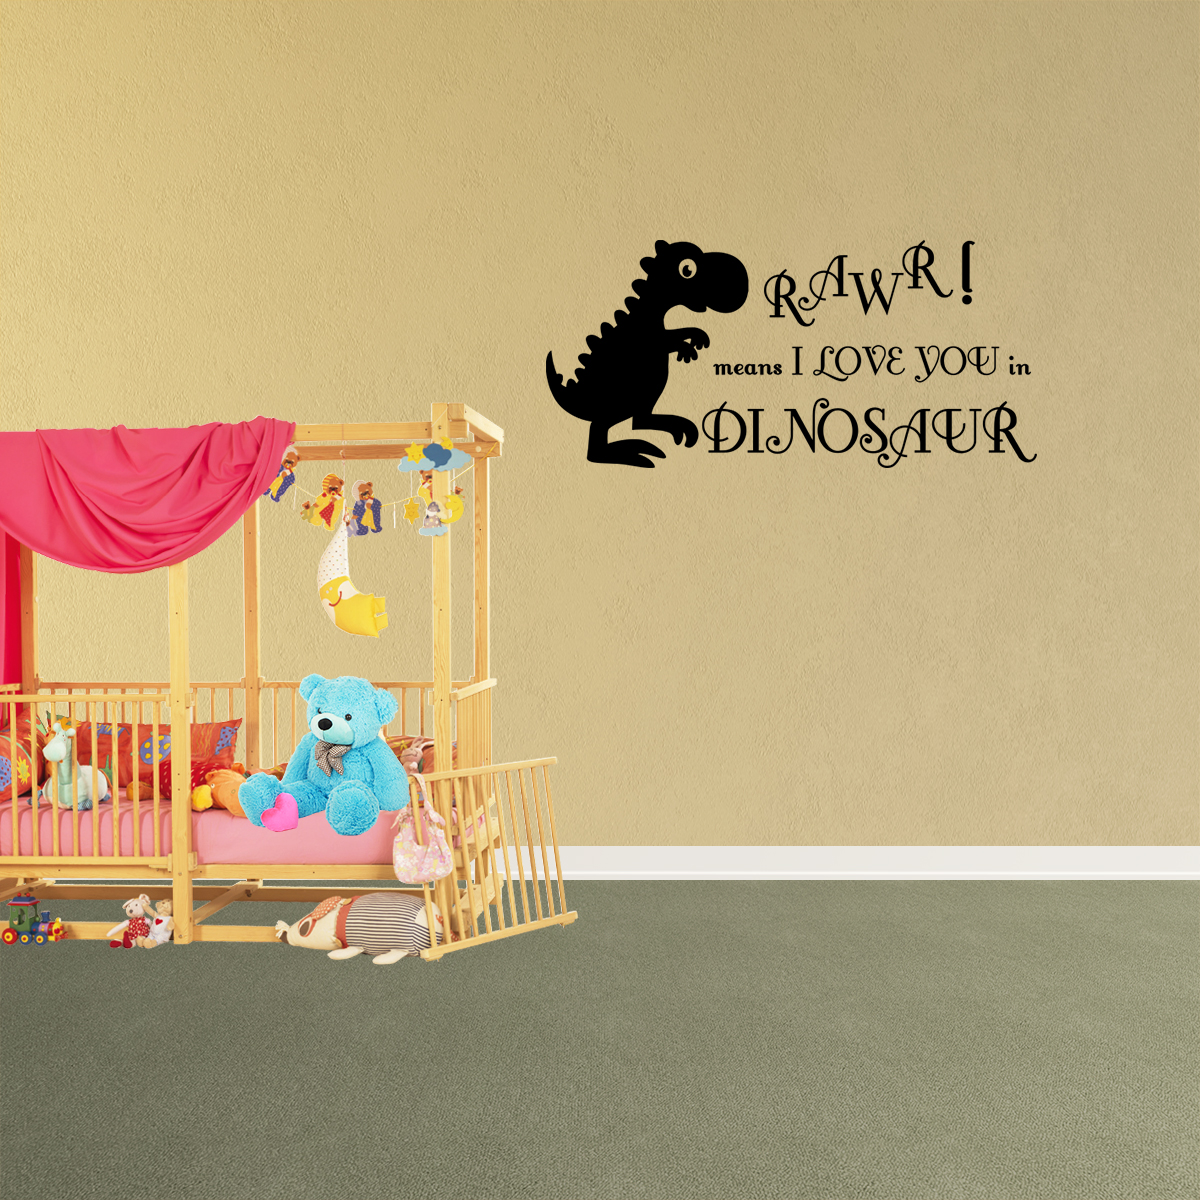 Wall Decal Quote Rawr Means I Love You In Dinosaur Playroom Sticker Decor R45